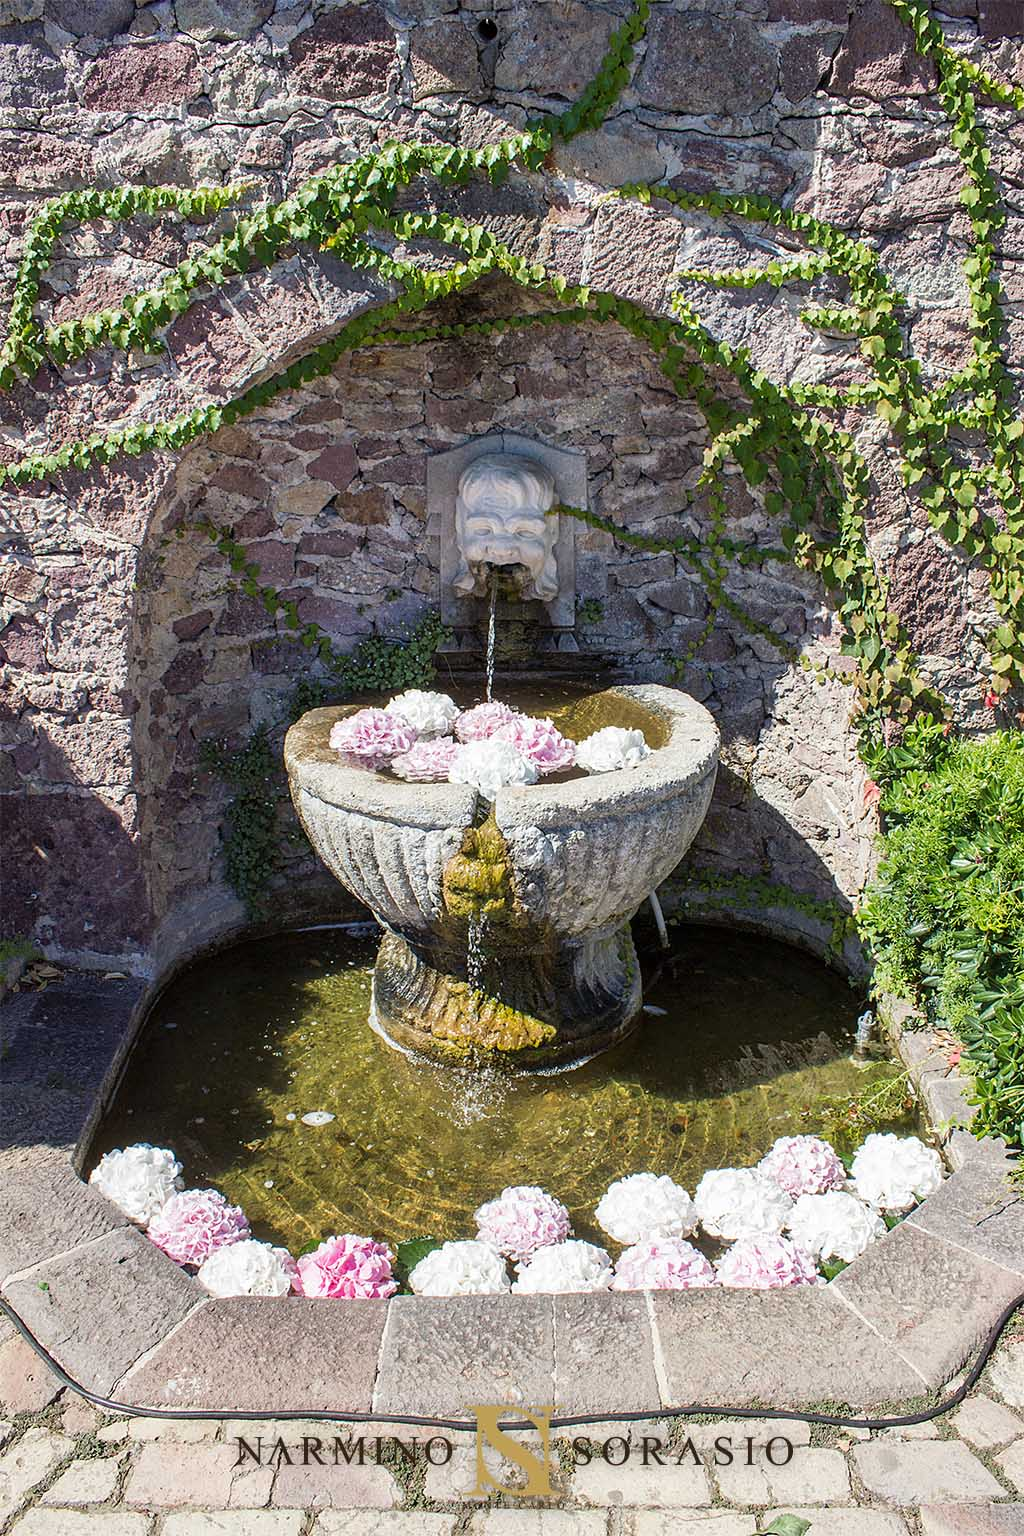 Une fontaine fleurie